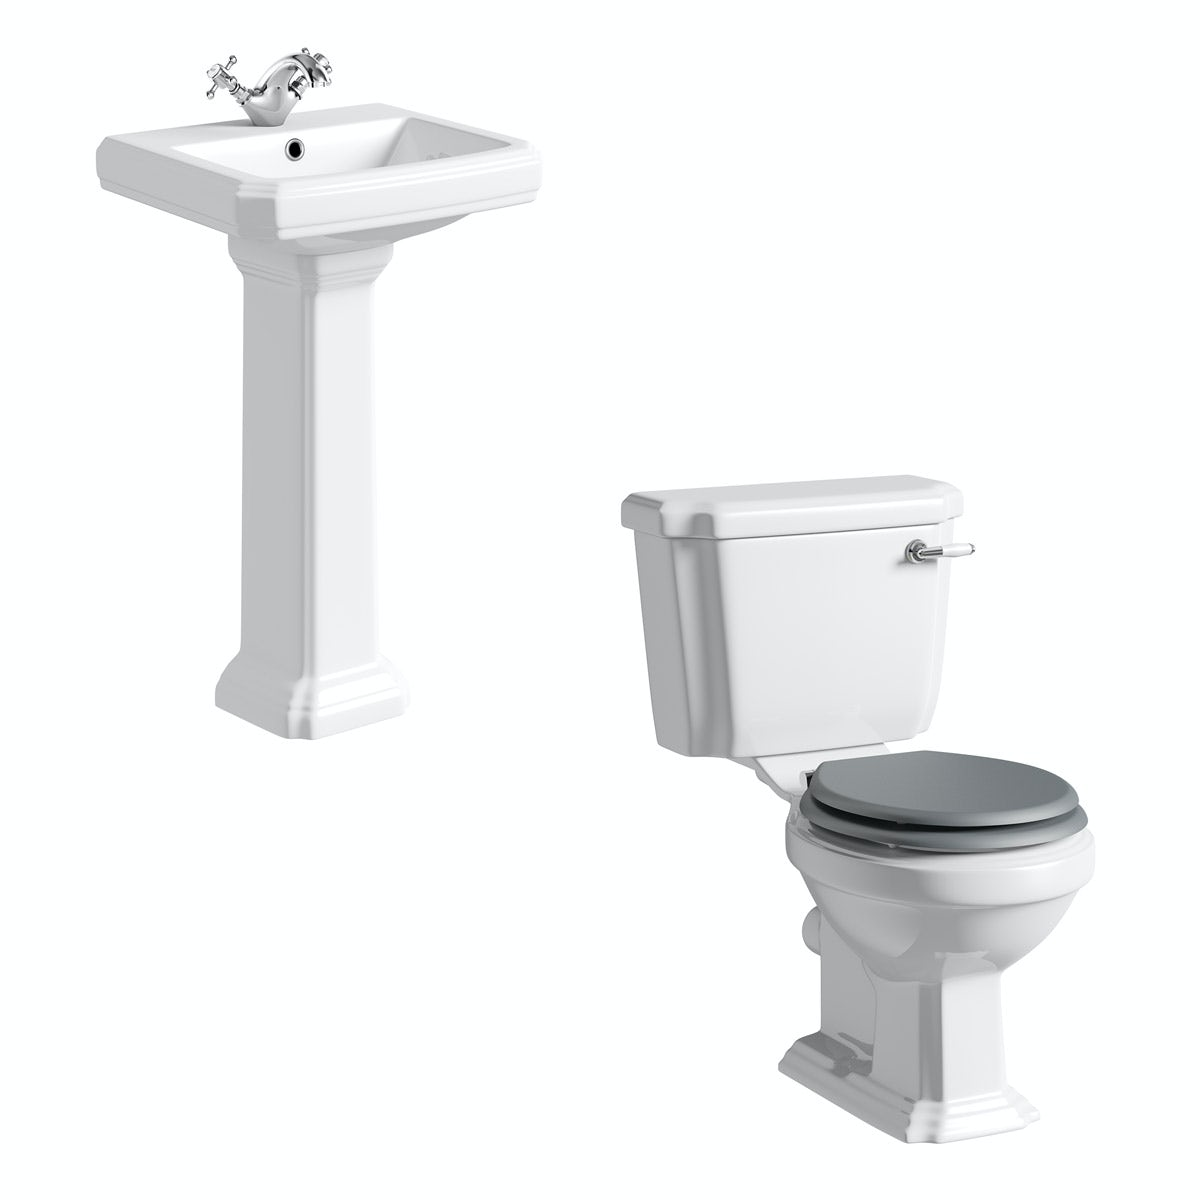 The Bath Co. Dulwich cloakroom suite with grey seat and full pedestal basin 500mm